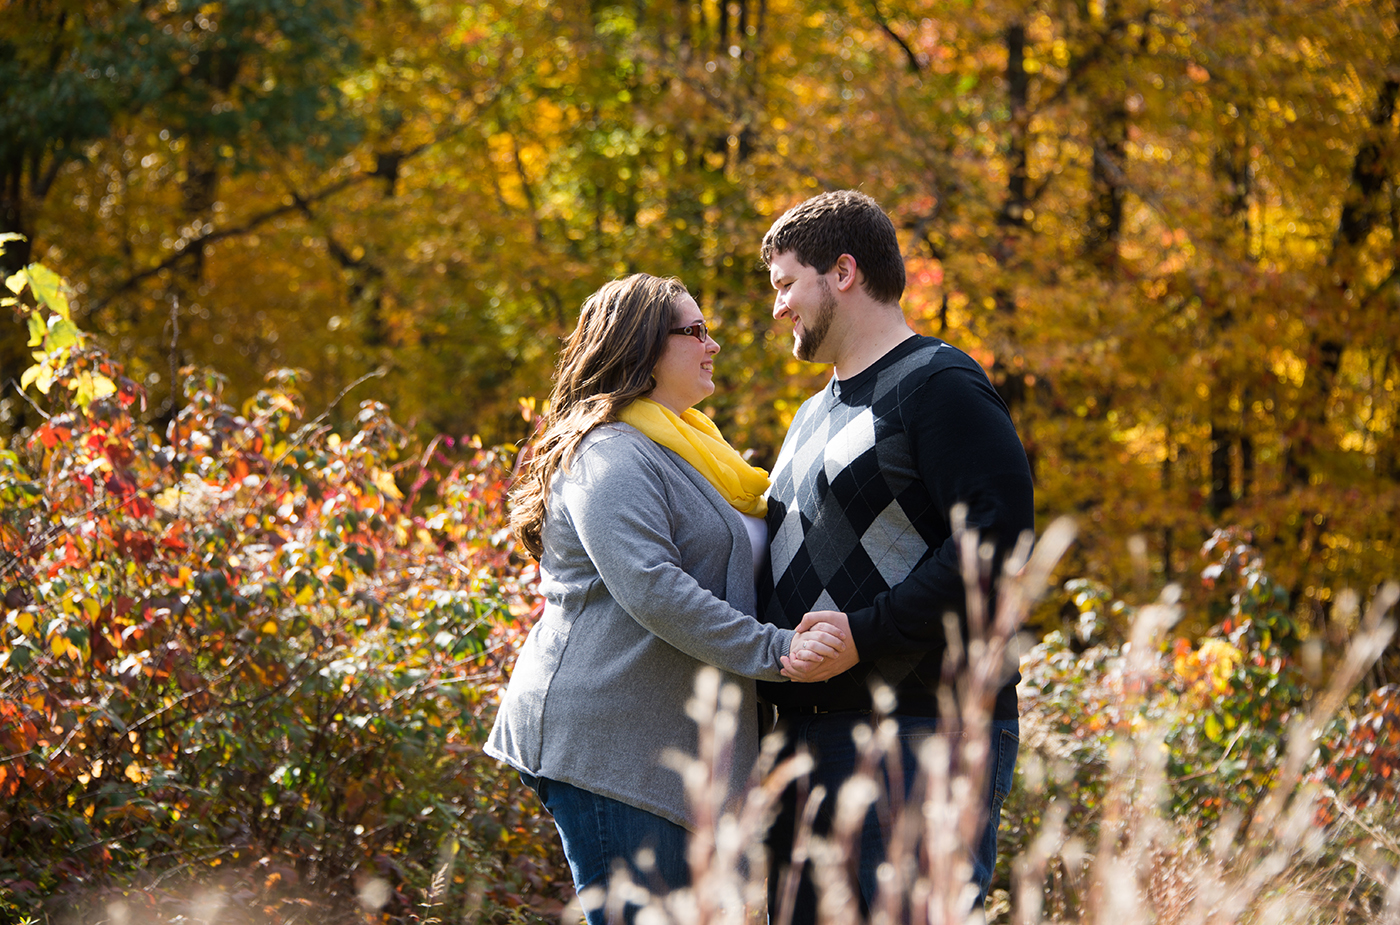 All Occasions Photography Albany NY - Engagement Photography Autumn Wilderness Shot